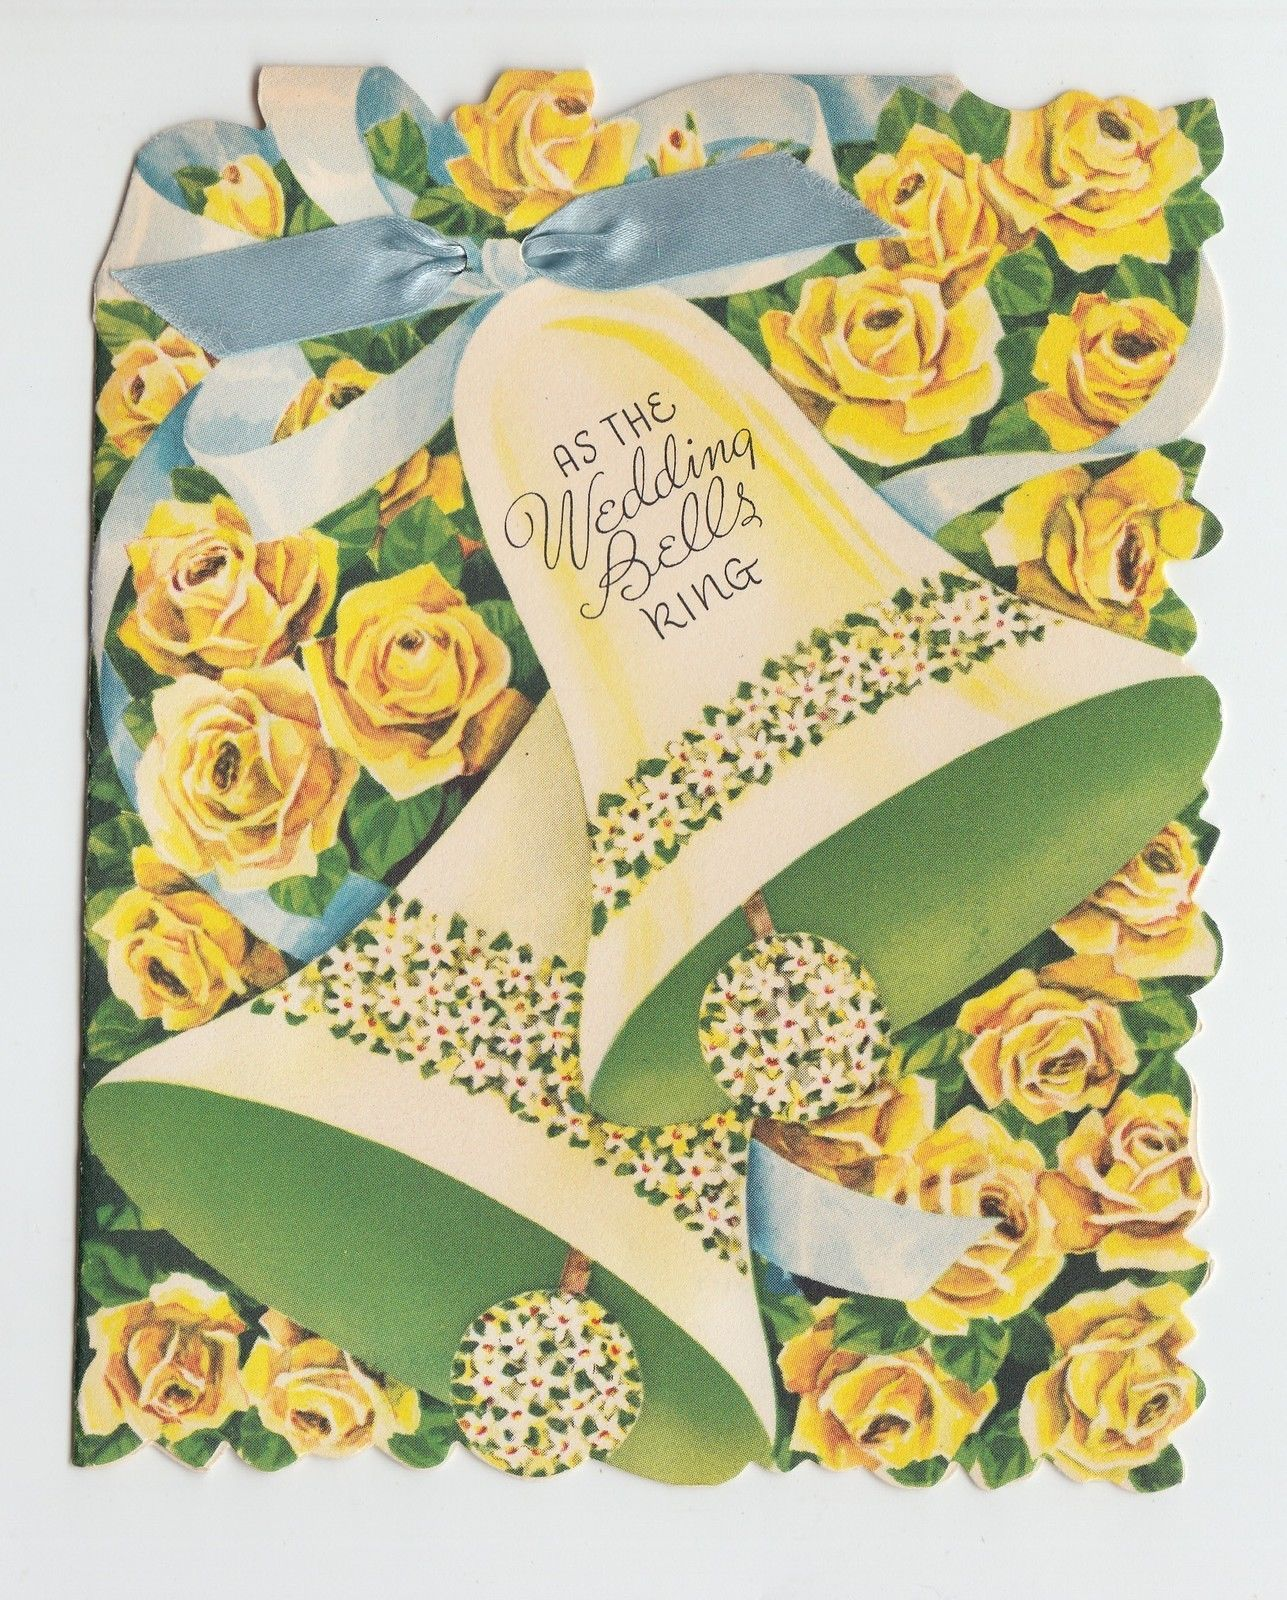 Vintage yellow roses bells blue ribbon wedding congratulations vintage yellow roses bells blue ribbon wedding congratulations greeting card ebay m4hsunfo Choice Image